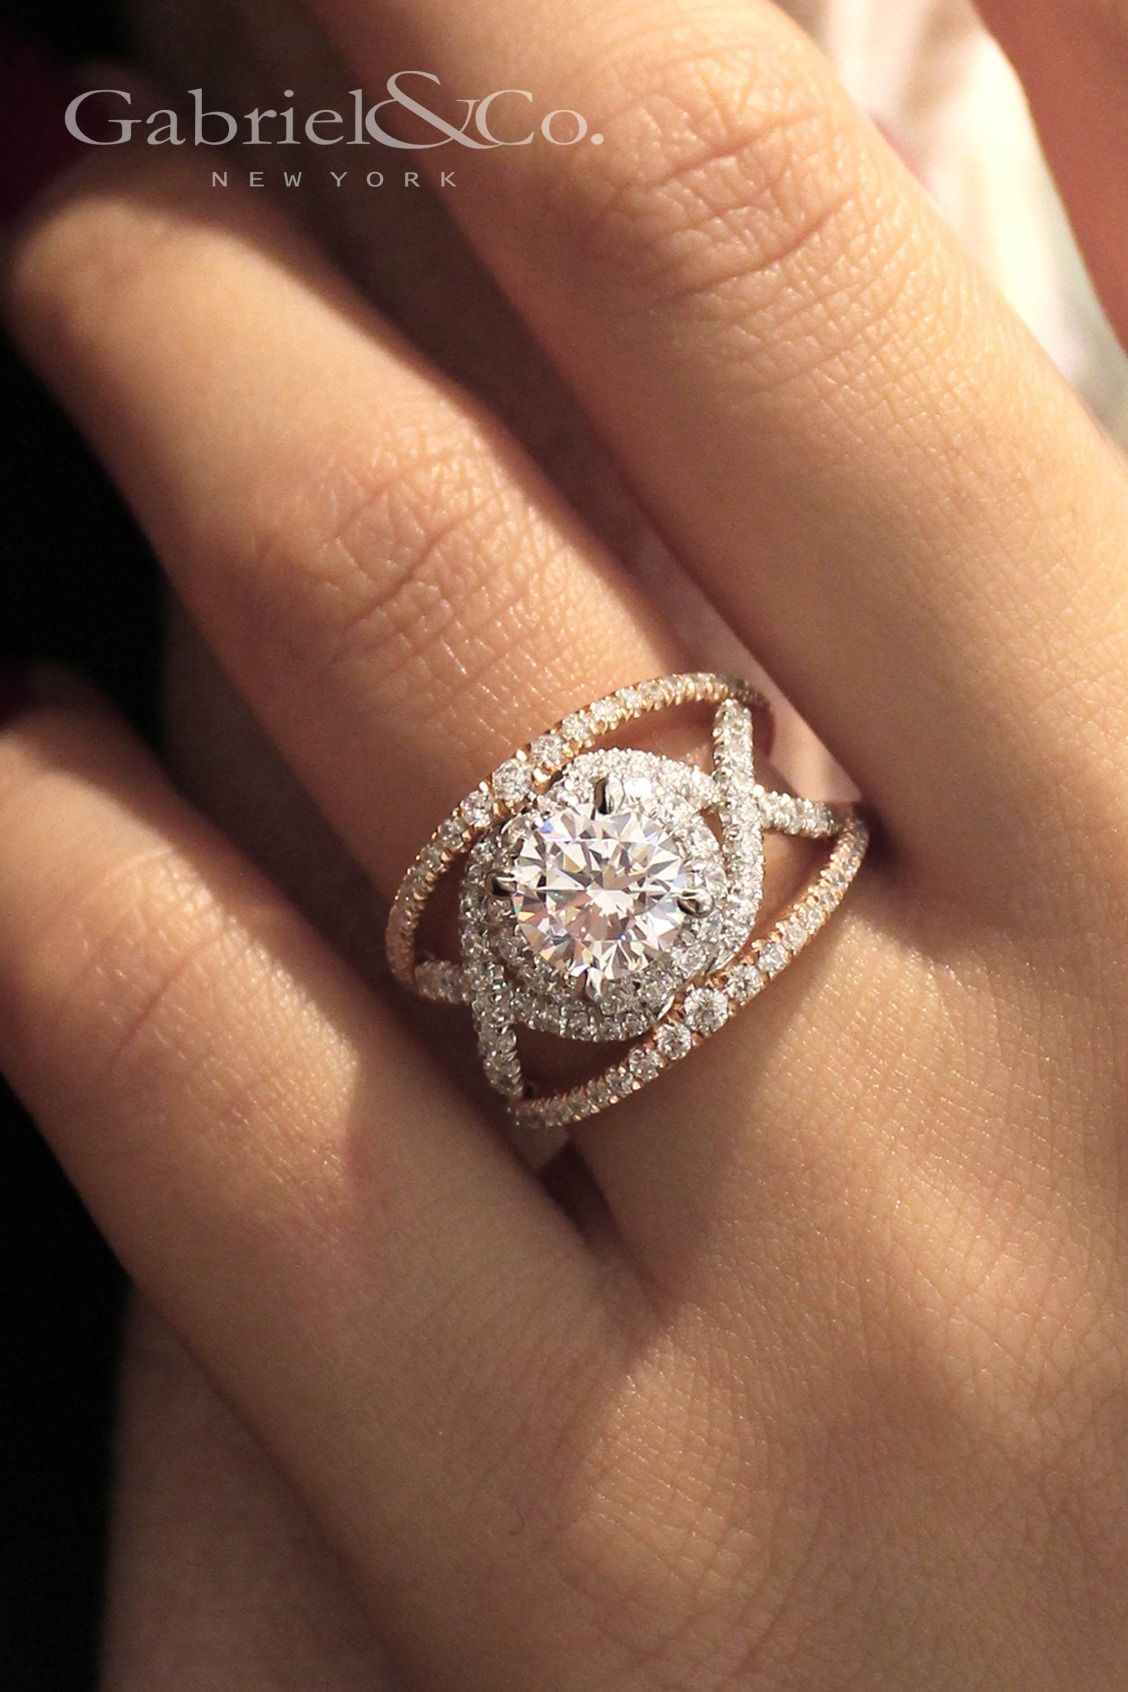 b1082fca3b235 Gabriel NY - Voted #1 Most Preferred Fine Jewelry and Bridal Brand ...